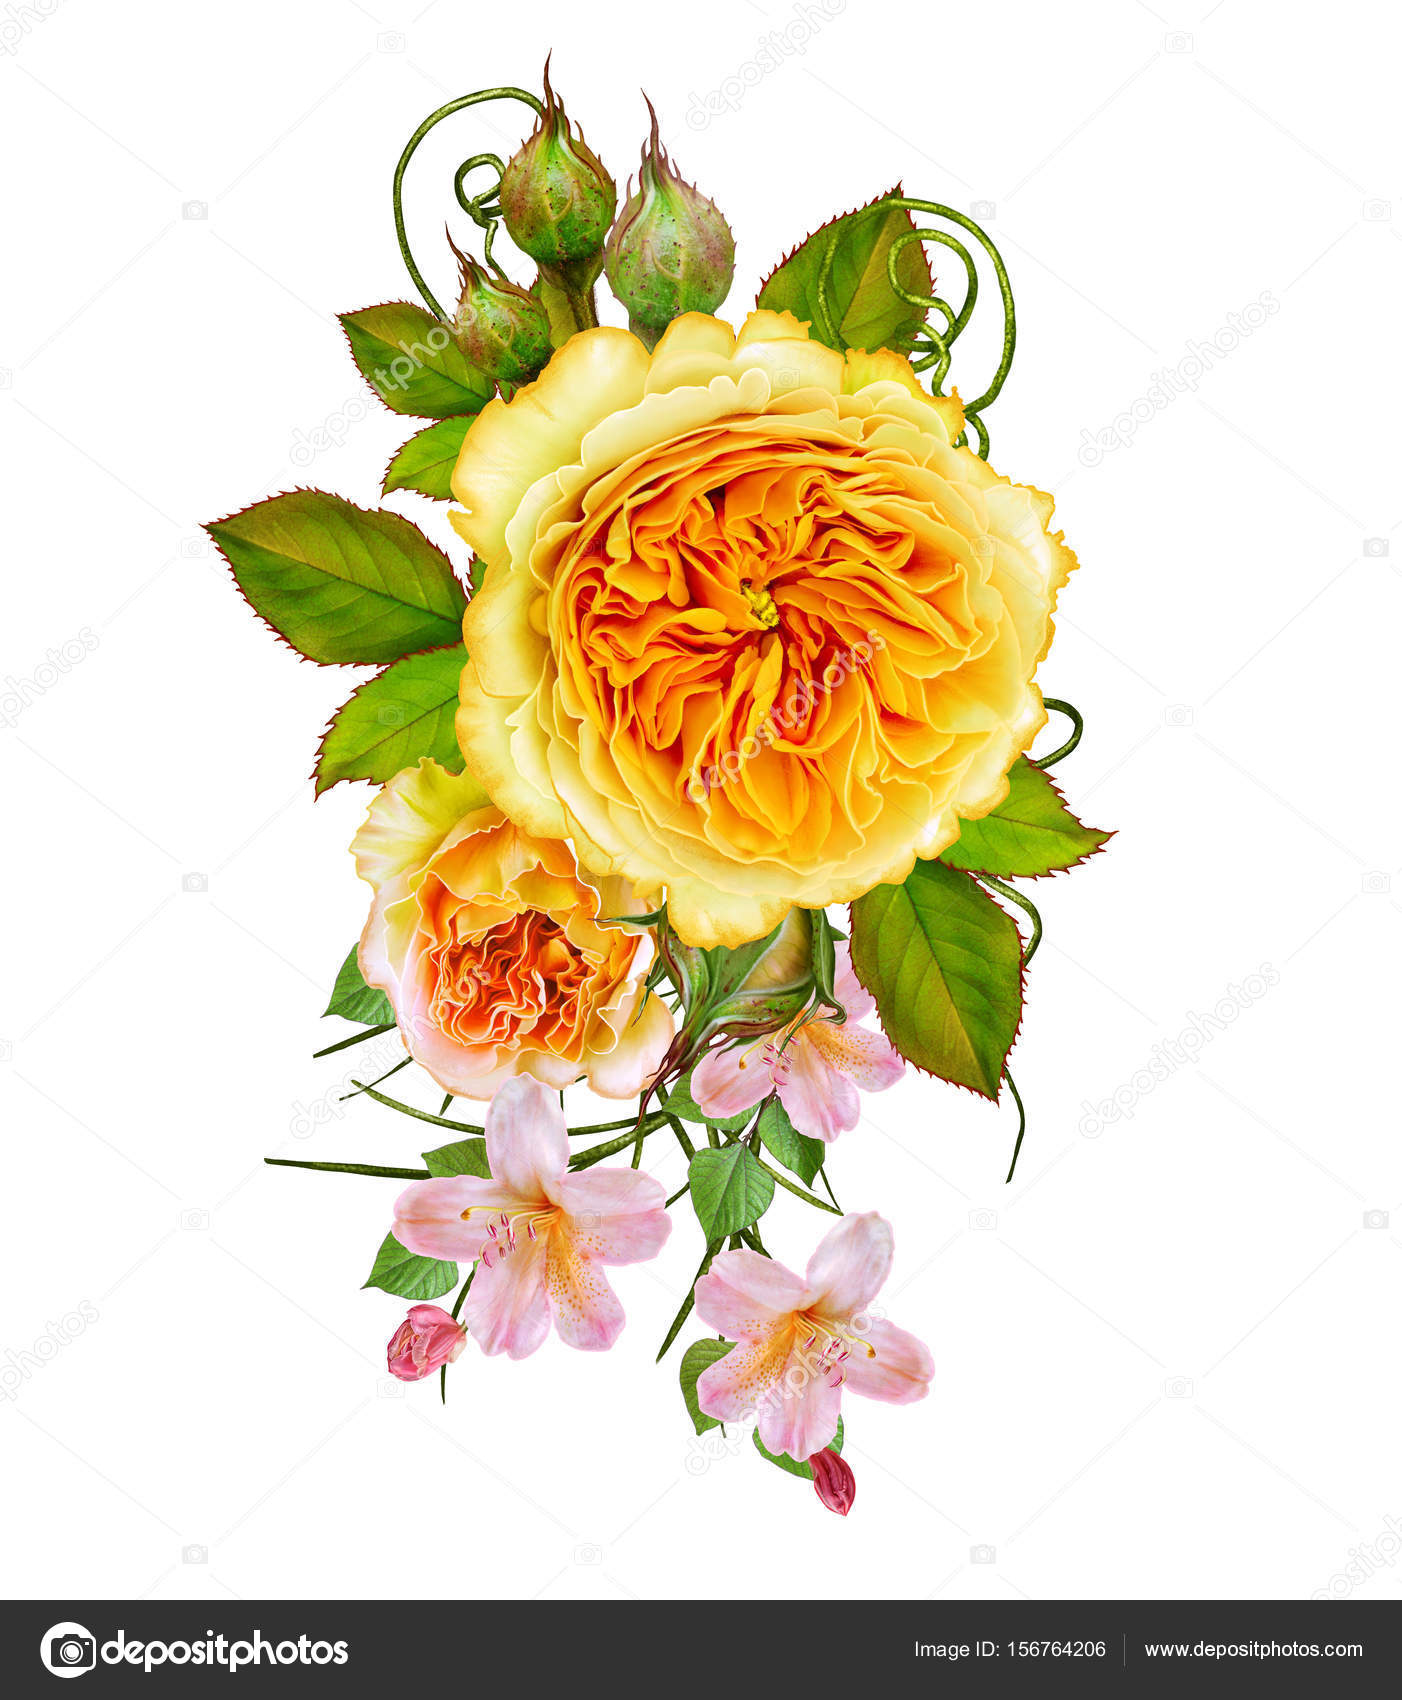 Flower Arrangement Of Delicate Orange And Yellow Roses Isolated On